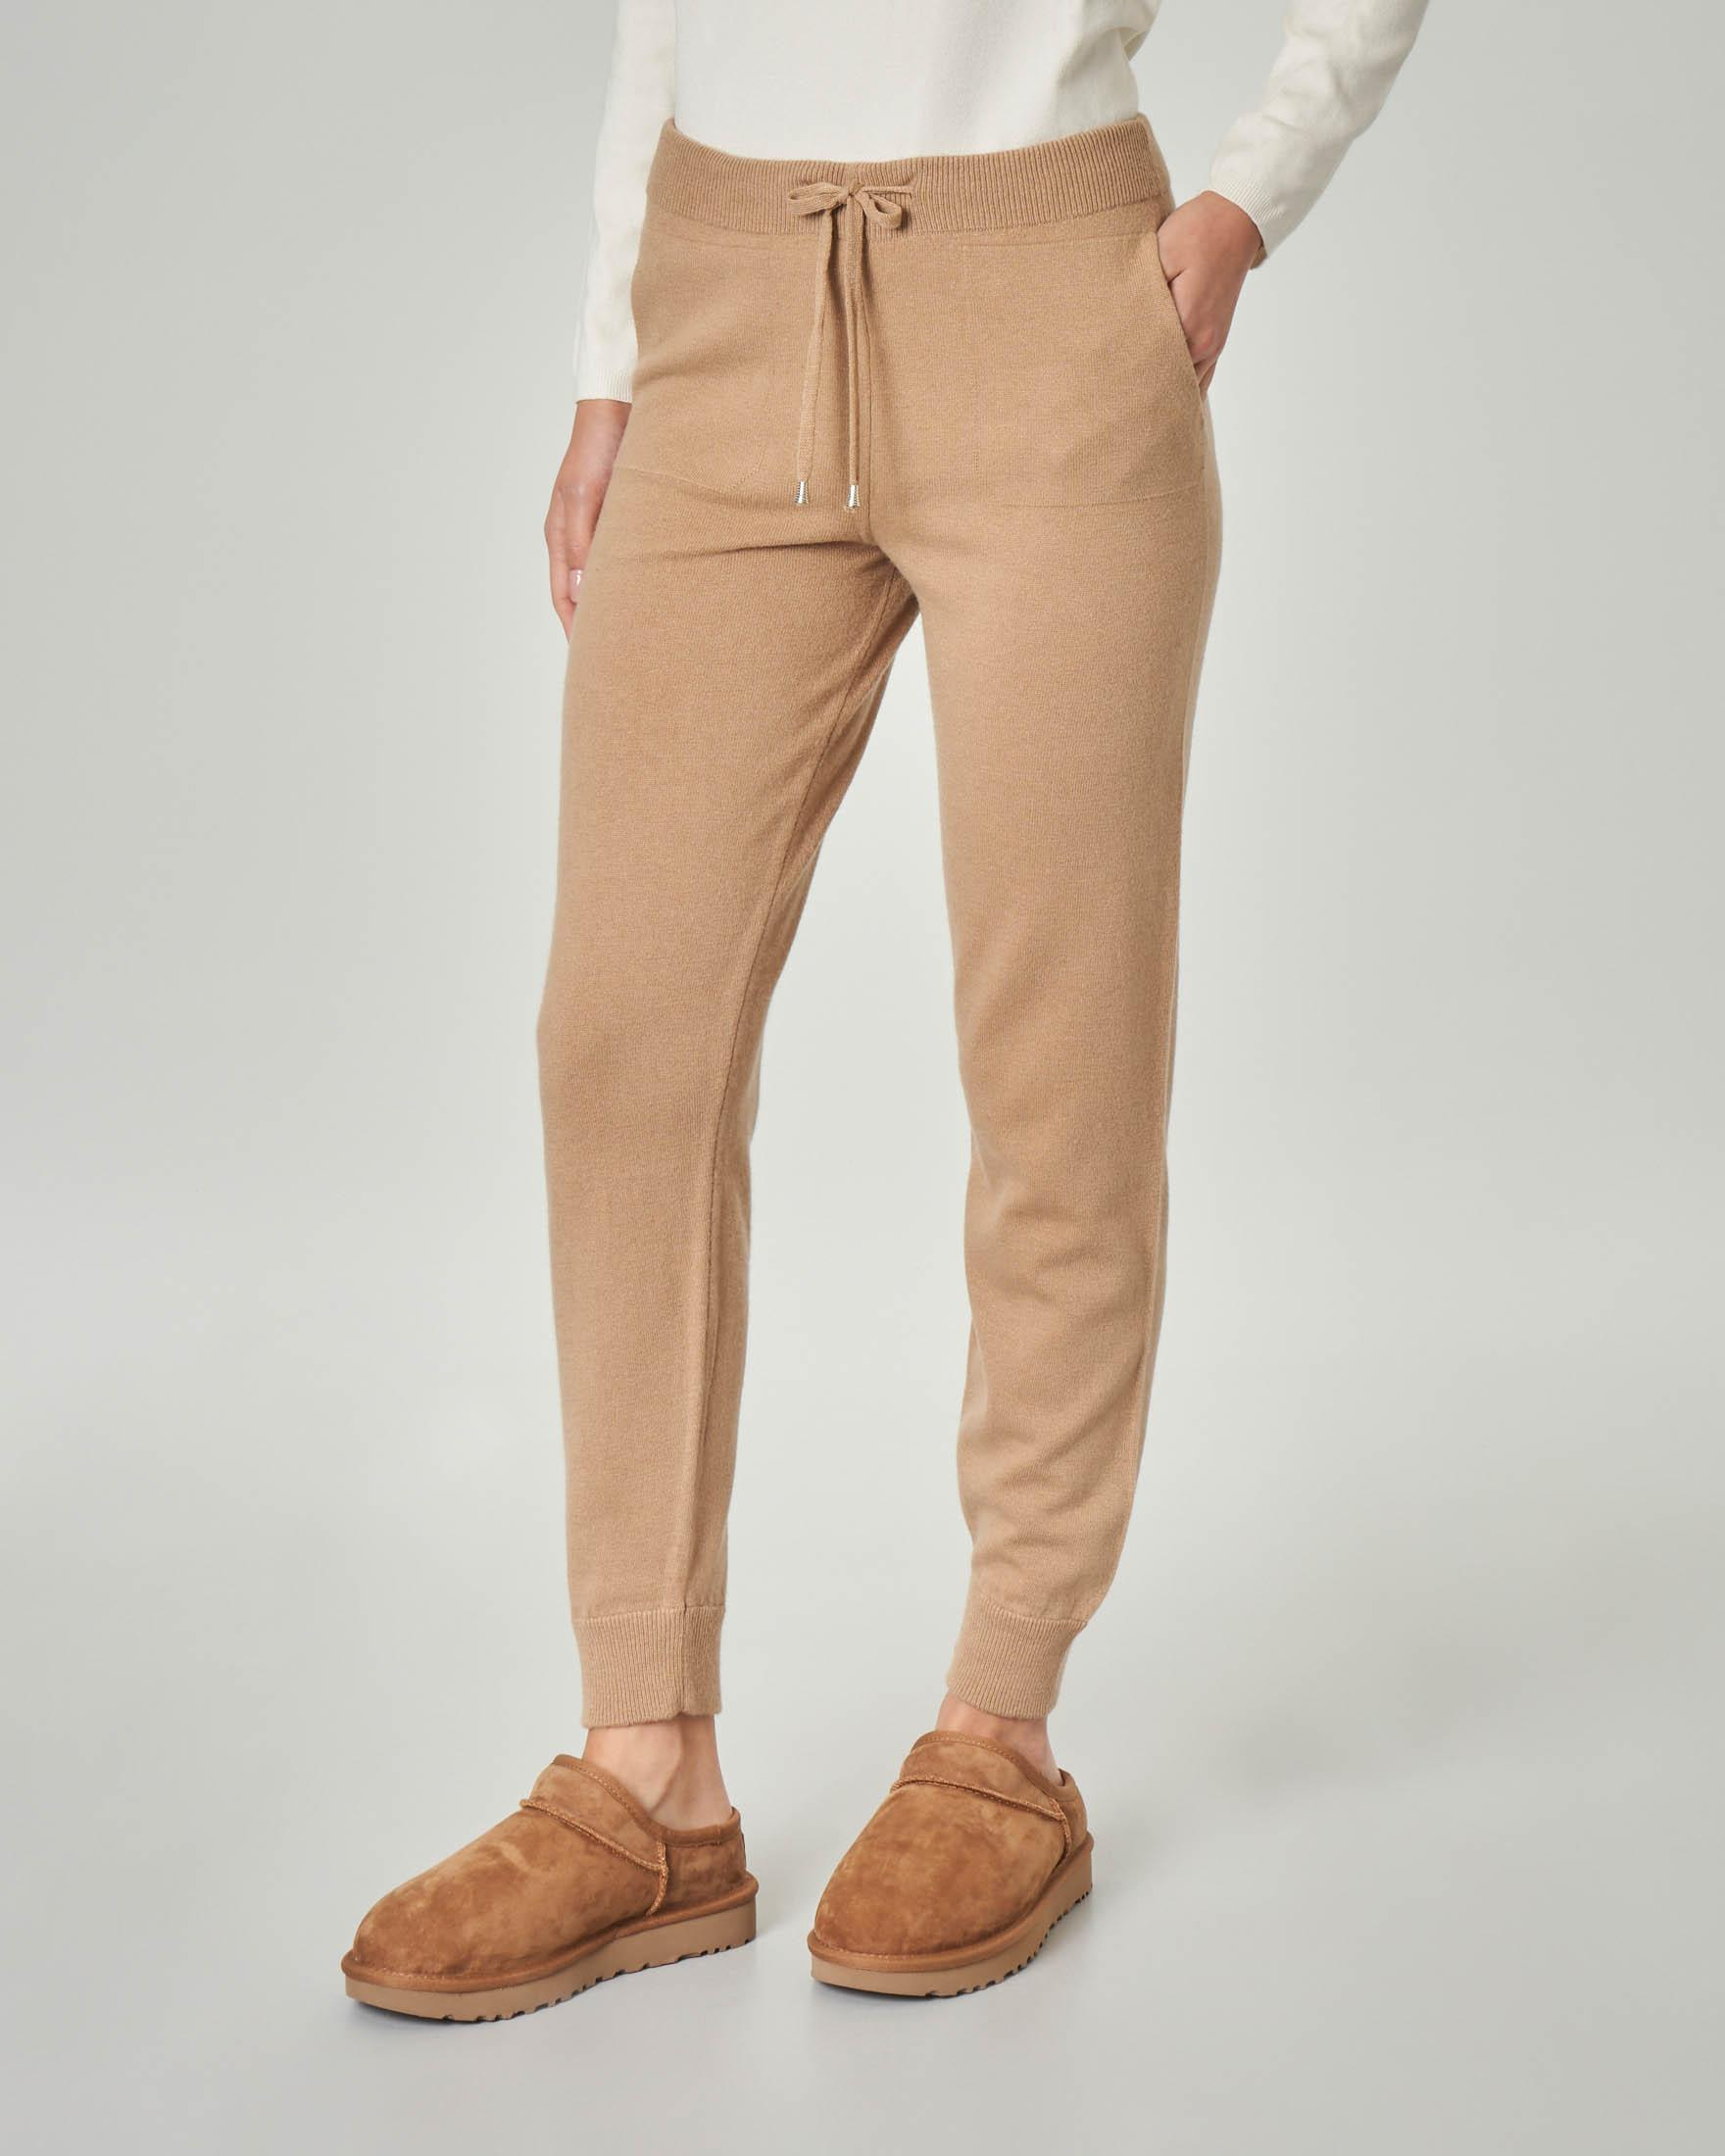 Joggers color cammello in lana misto viscosa con fascia elastica in vita